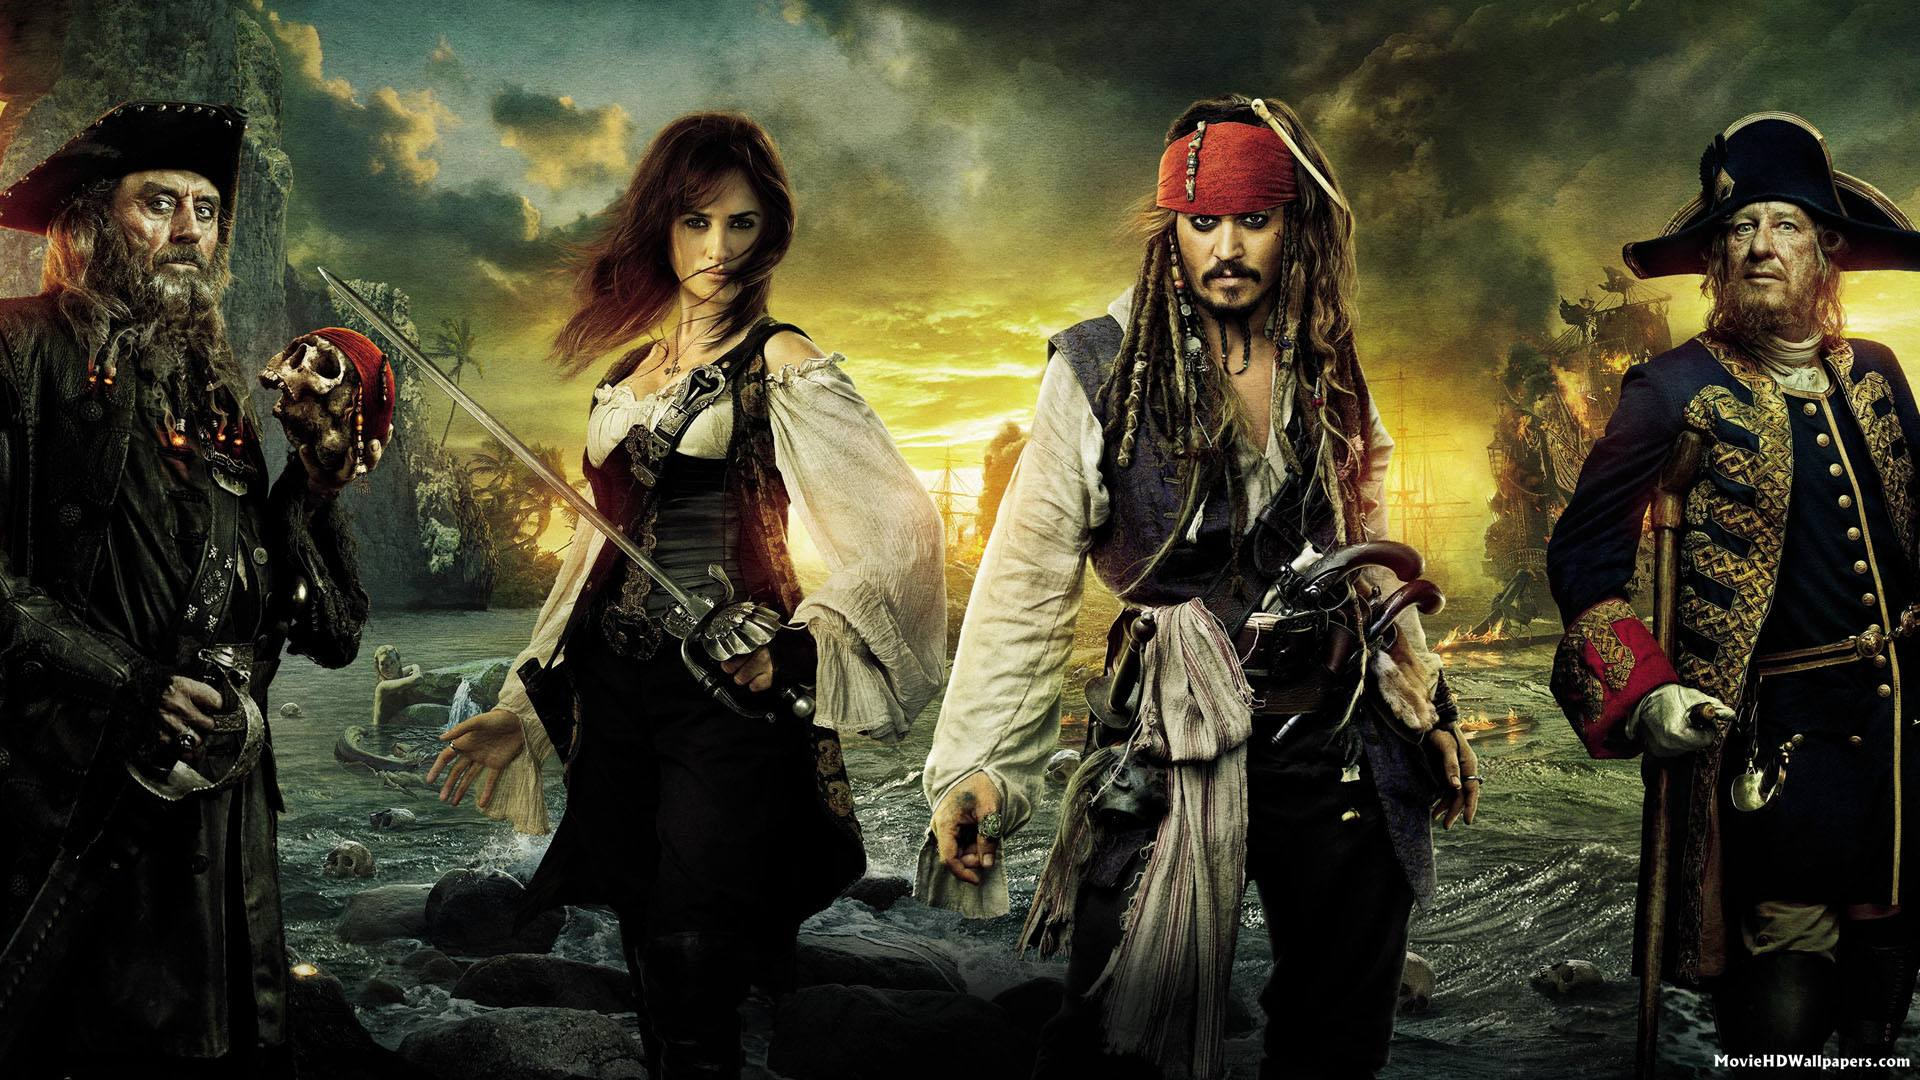 Pirates of the caribbean on stranger tides 2011 movie hd wallpapers - Pirates of the caribbean images hd ...